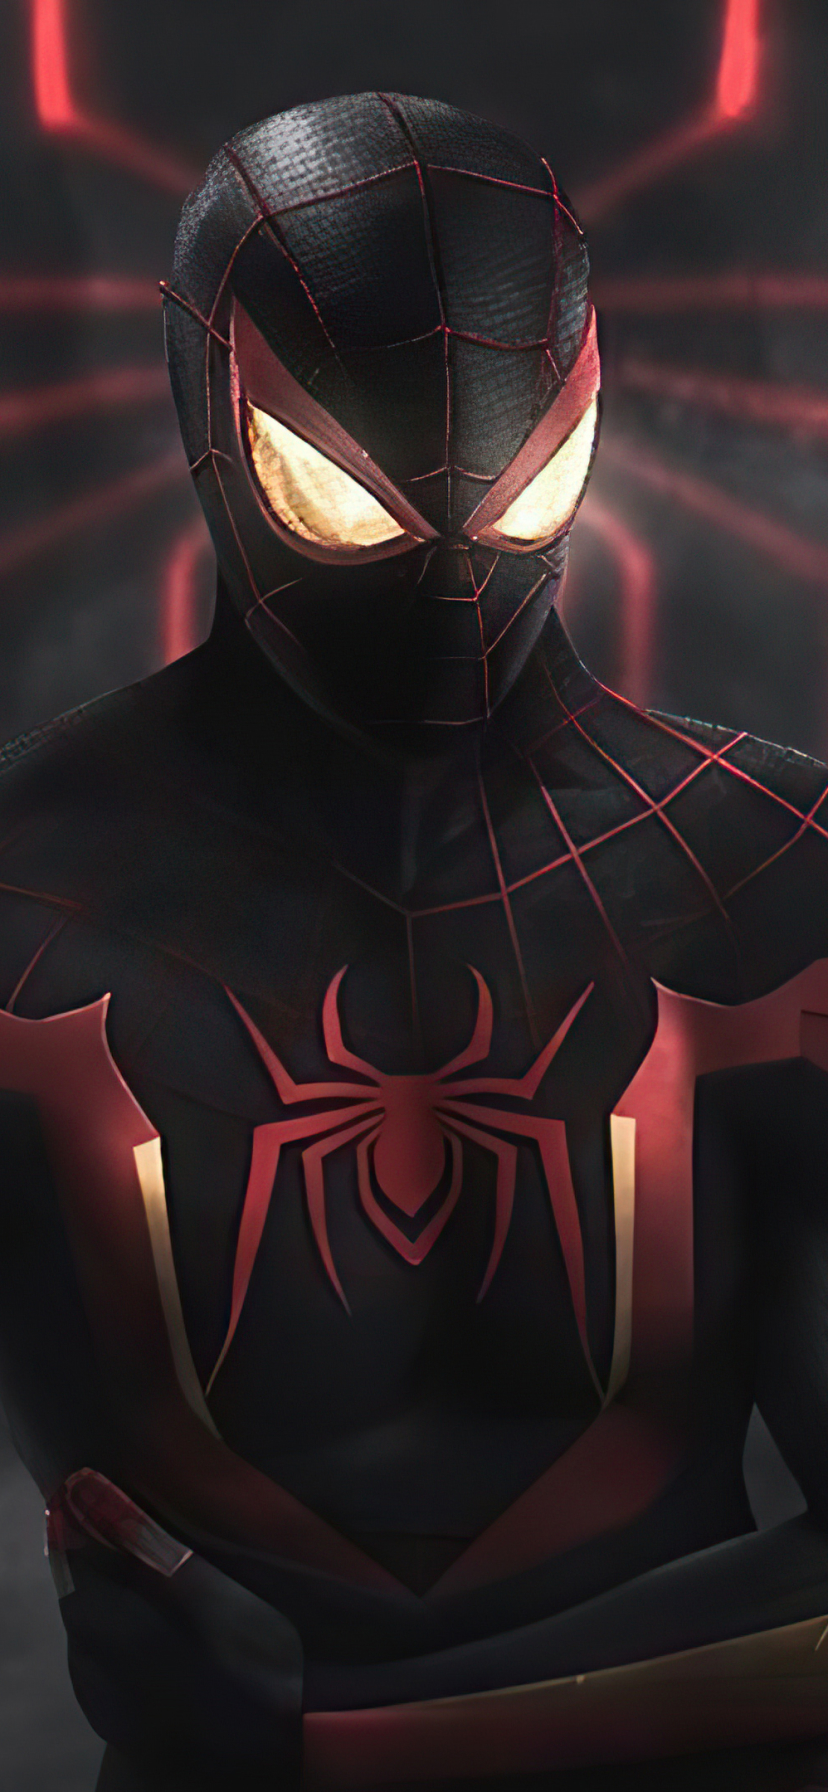 Spider-Man mobile wallpaper